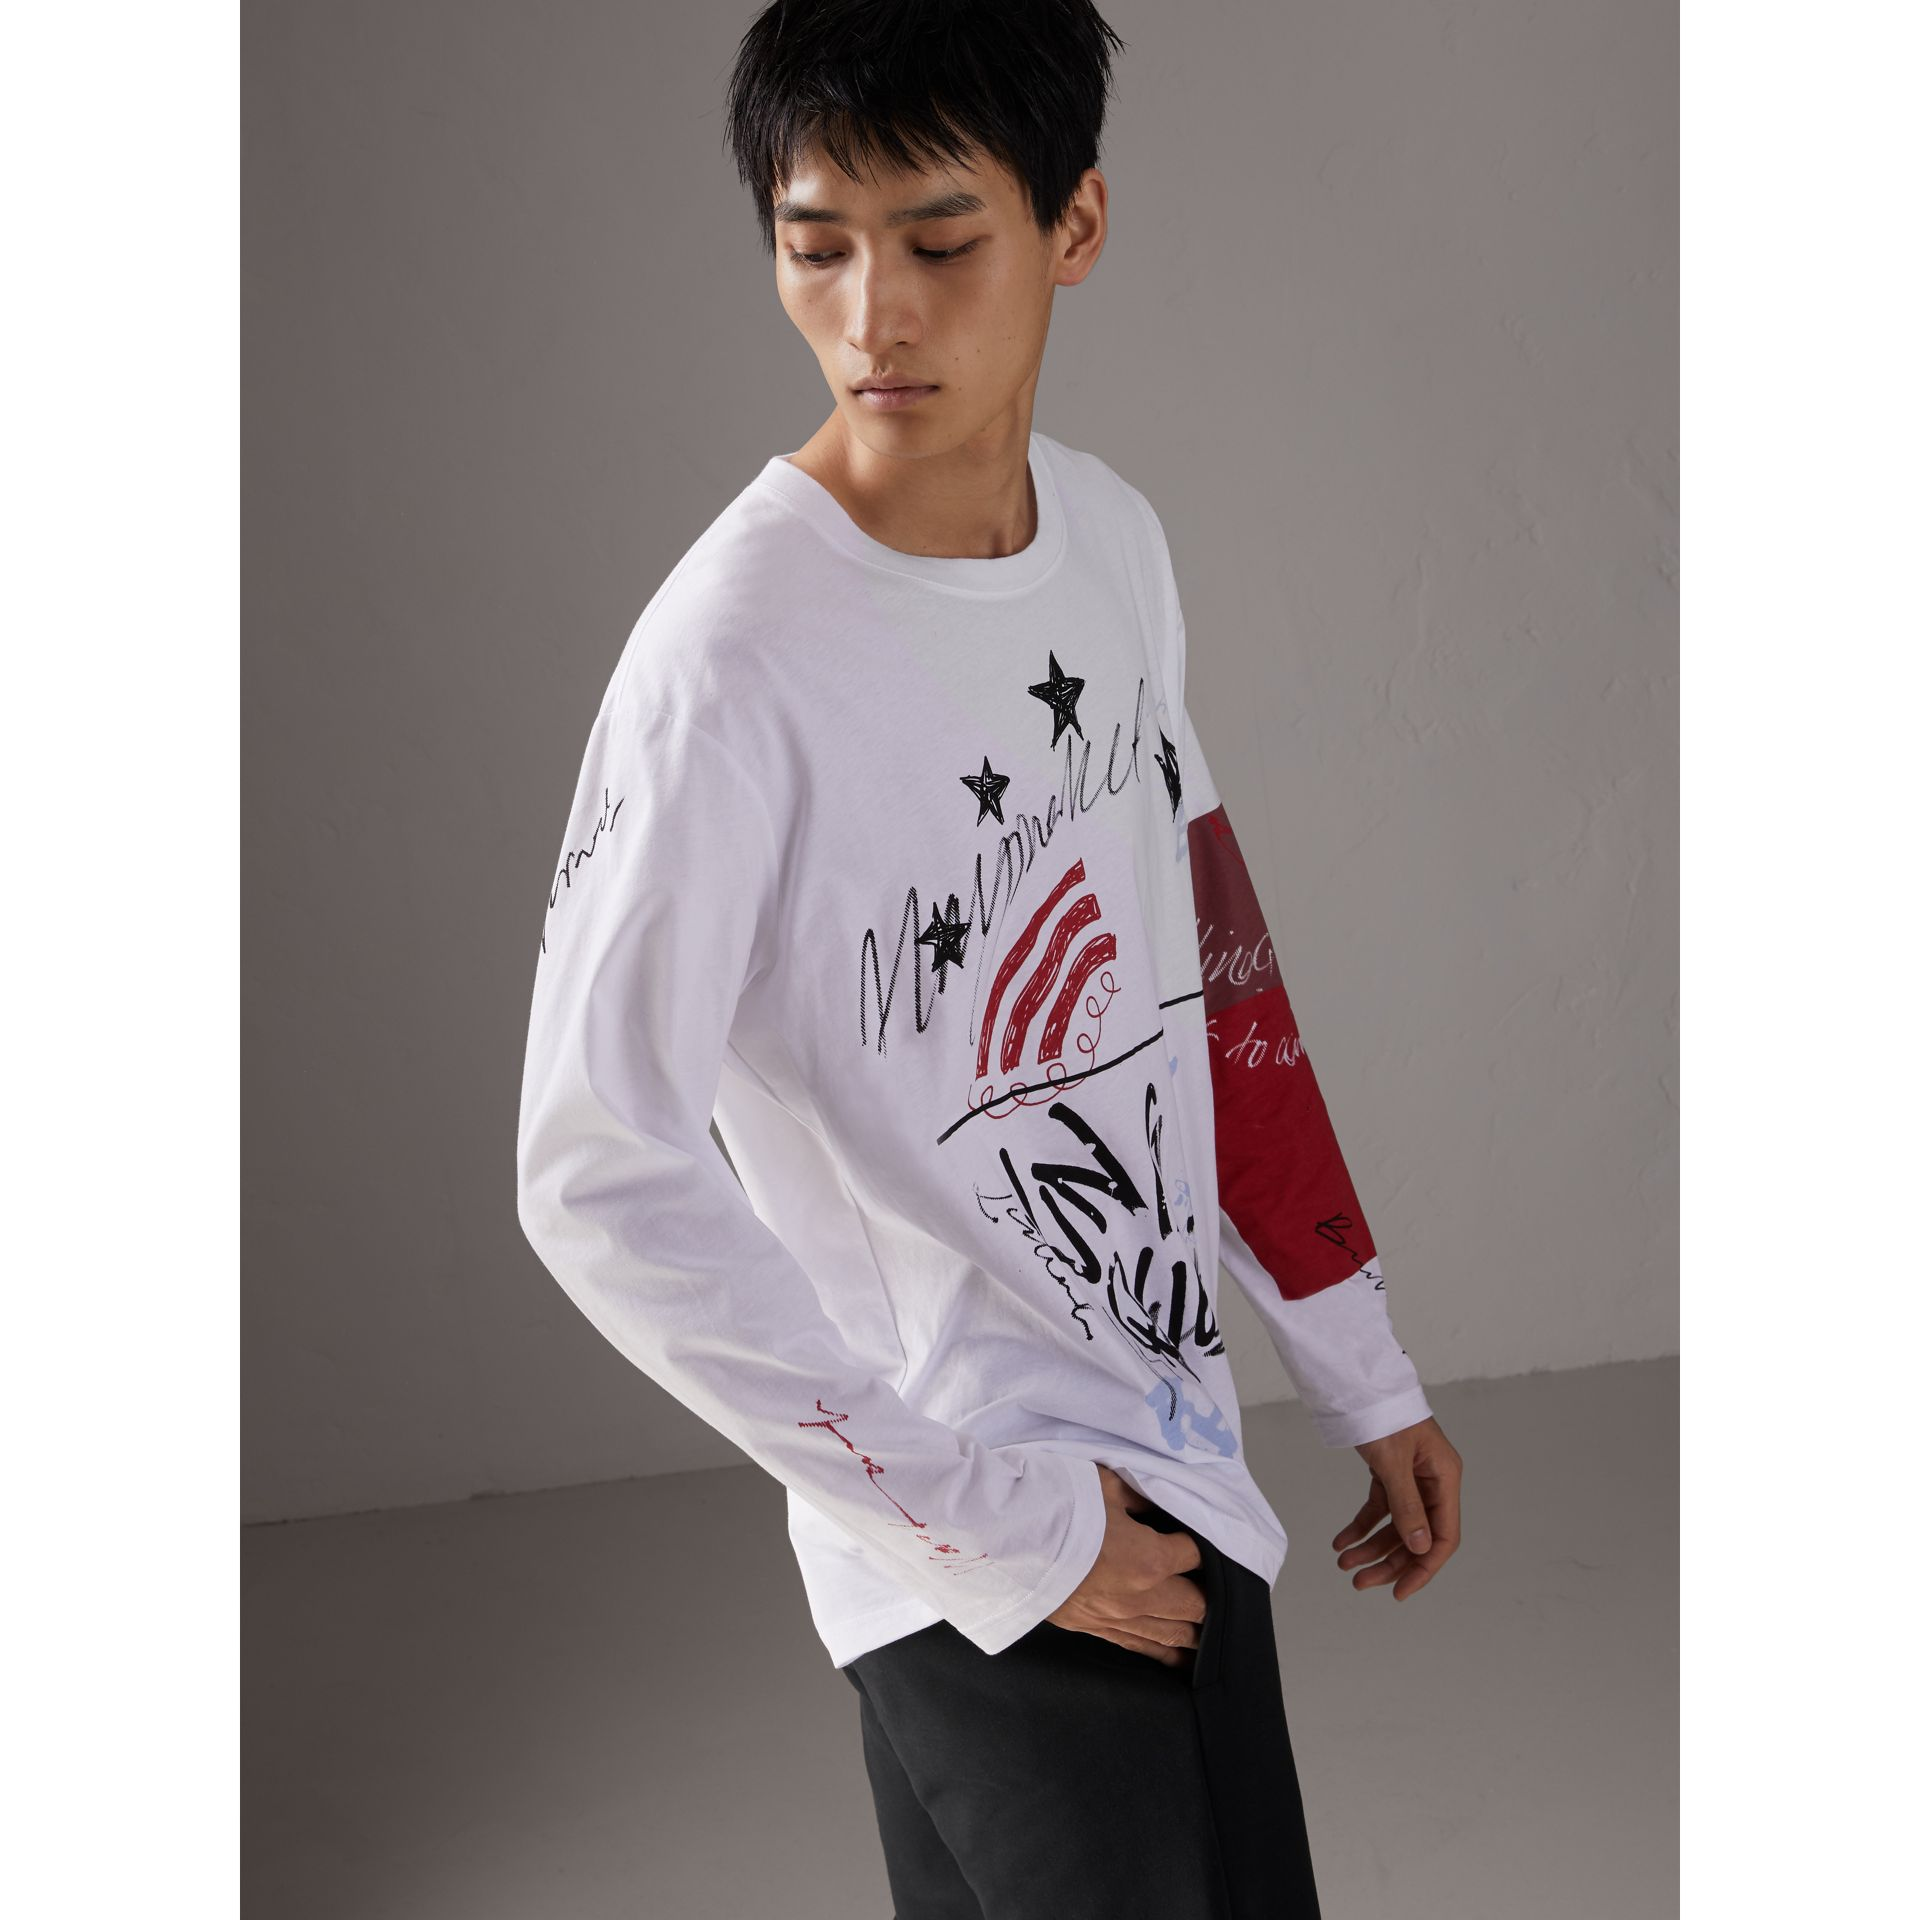 Burberry x Kris Wu Long-sleeve Printed Cotton Top in White - Men | Burberry - gallery image 5